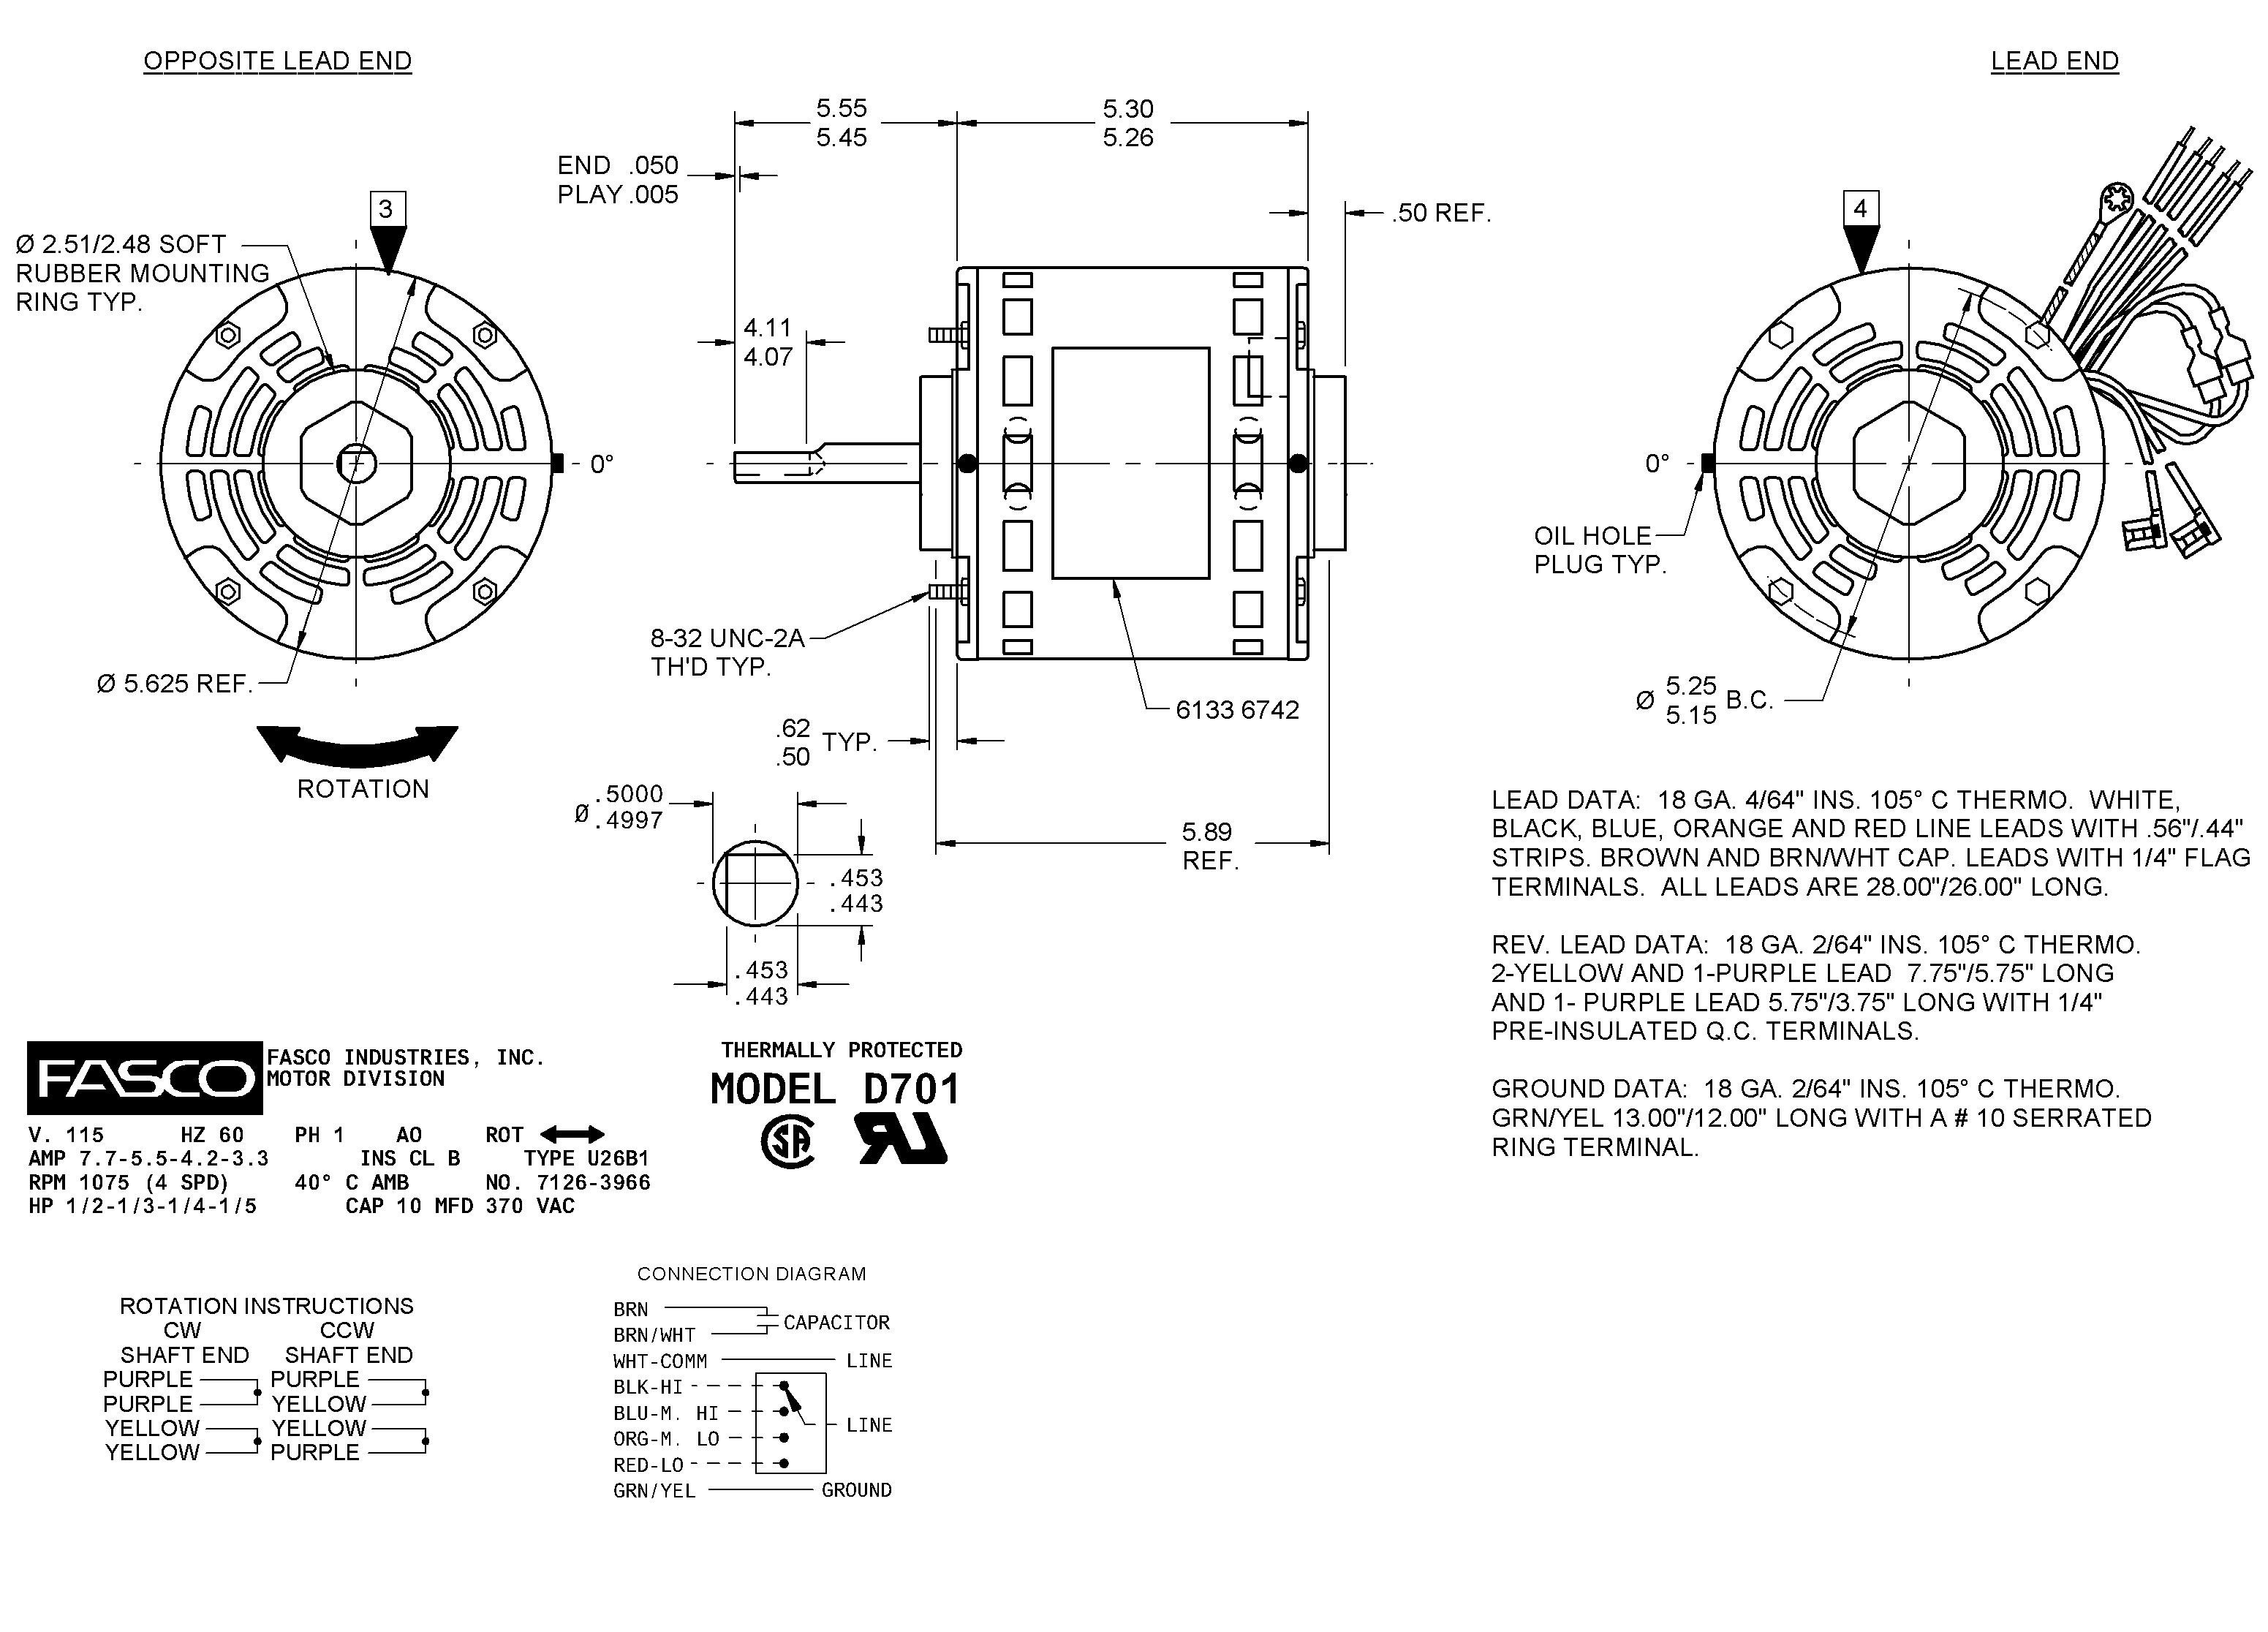 fasco d701 wiring diagram Download-Hvac Motor Wiring Diagram Inspirationa Wiring Diagram for Fasco Blower Motor Refrence D701 Fasco 12 In 16-h